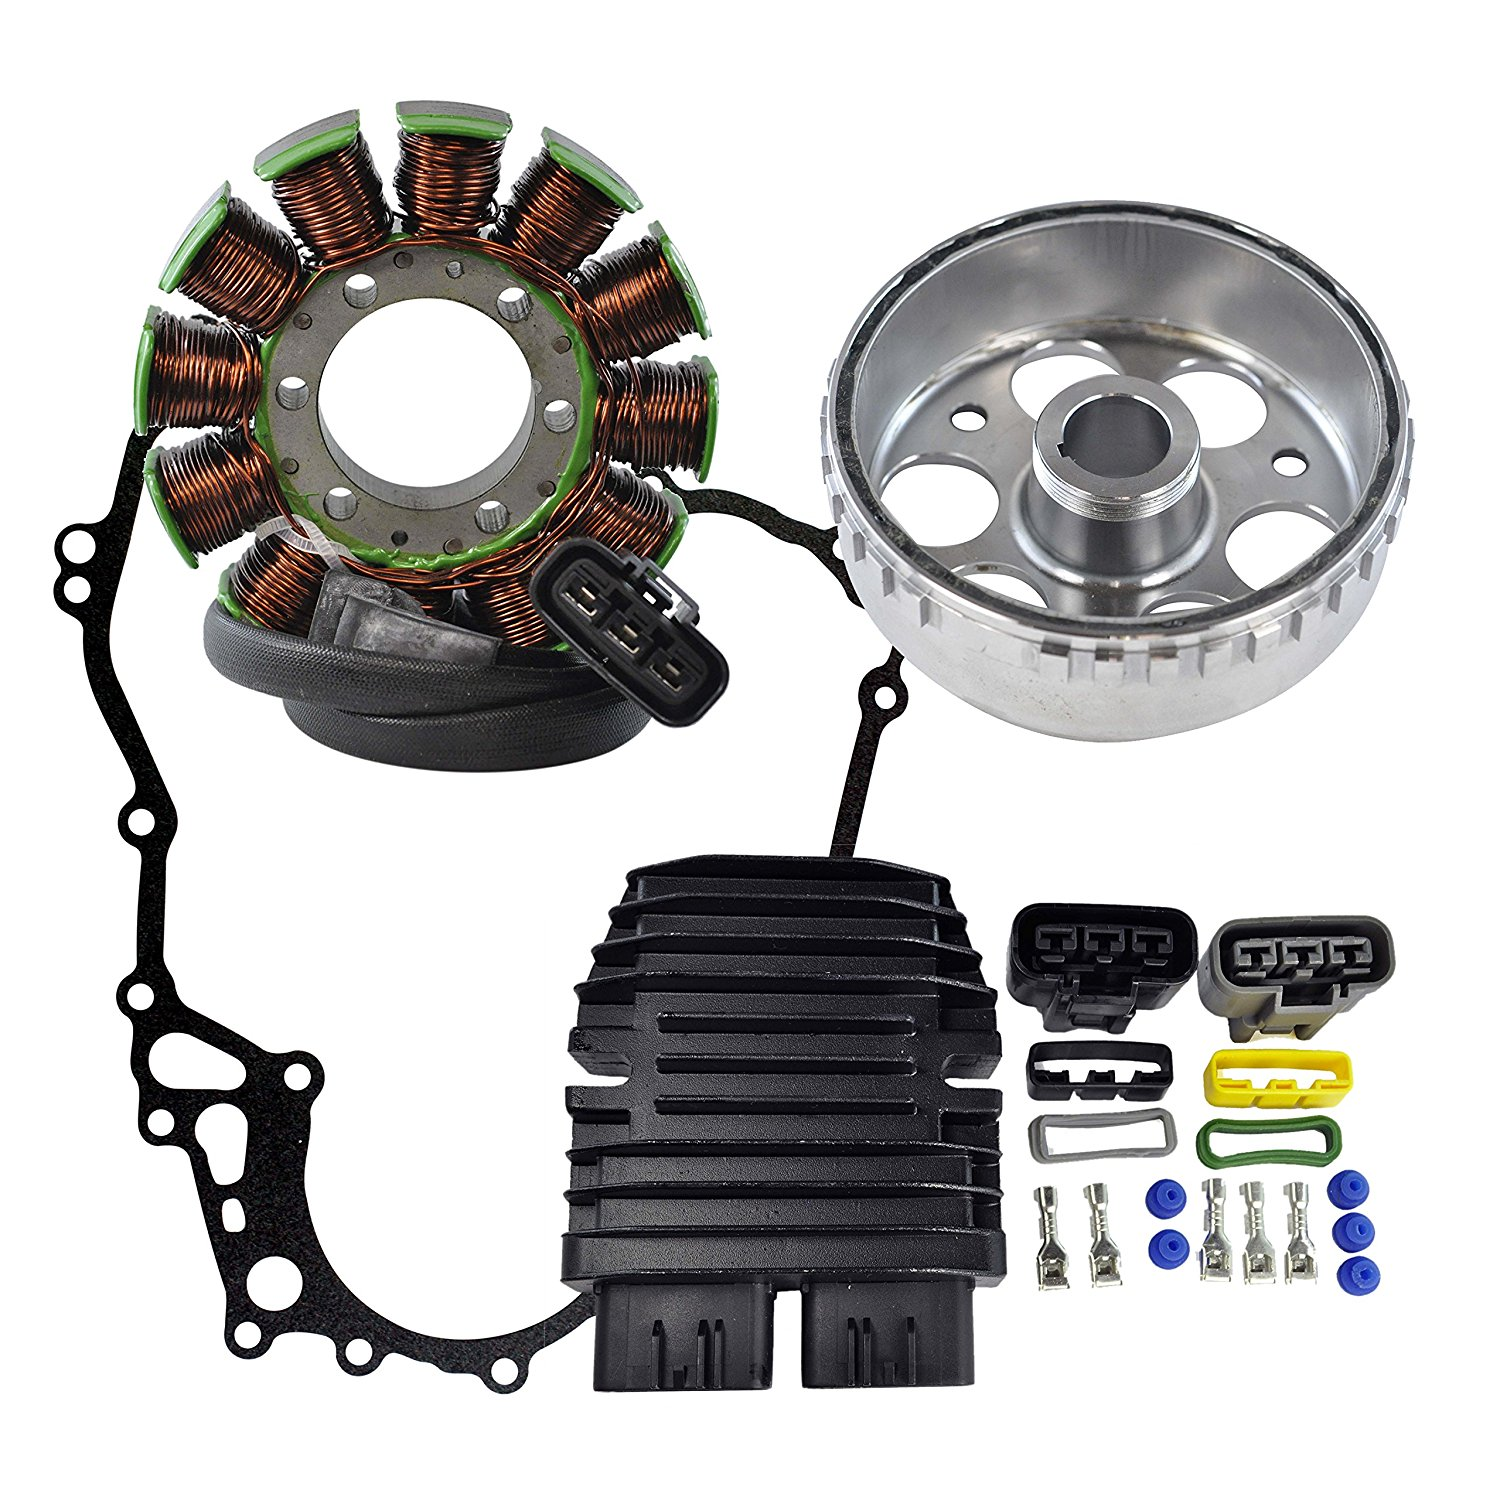 Kit Stator + Regulator Rectifier + Flywheel + Crankcase Cover Gasket For Ski Doo GSX/GTX/MX Z 1200 TNT EFI L/C 2009-2015 OEM Repl.#420892370 420430750 420892360 710000261 31600-HP0-A01 1D7-81960-01-00